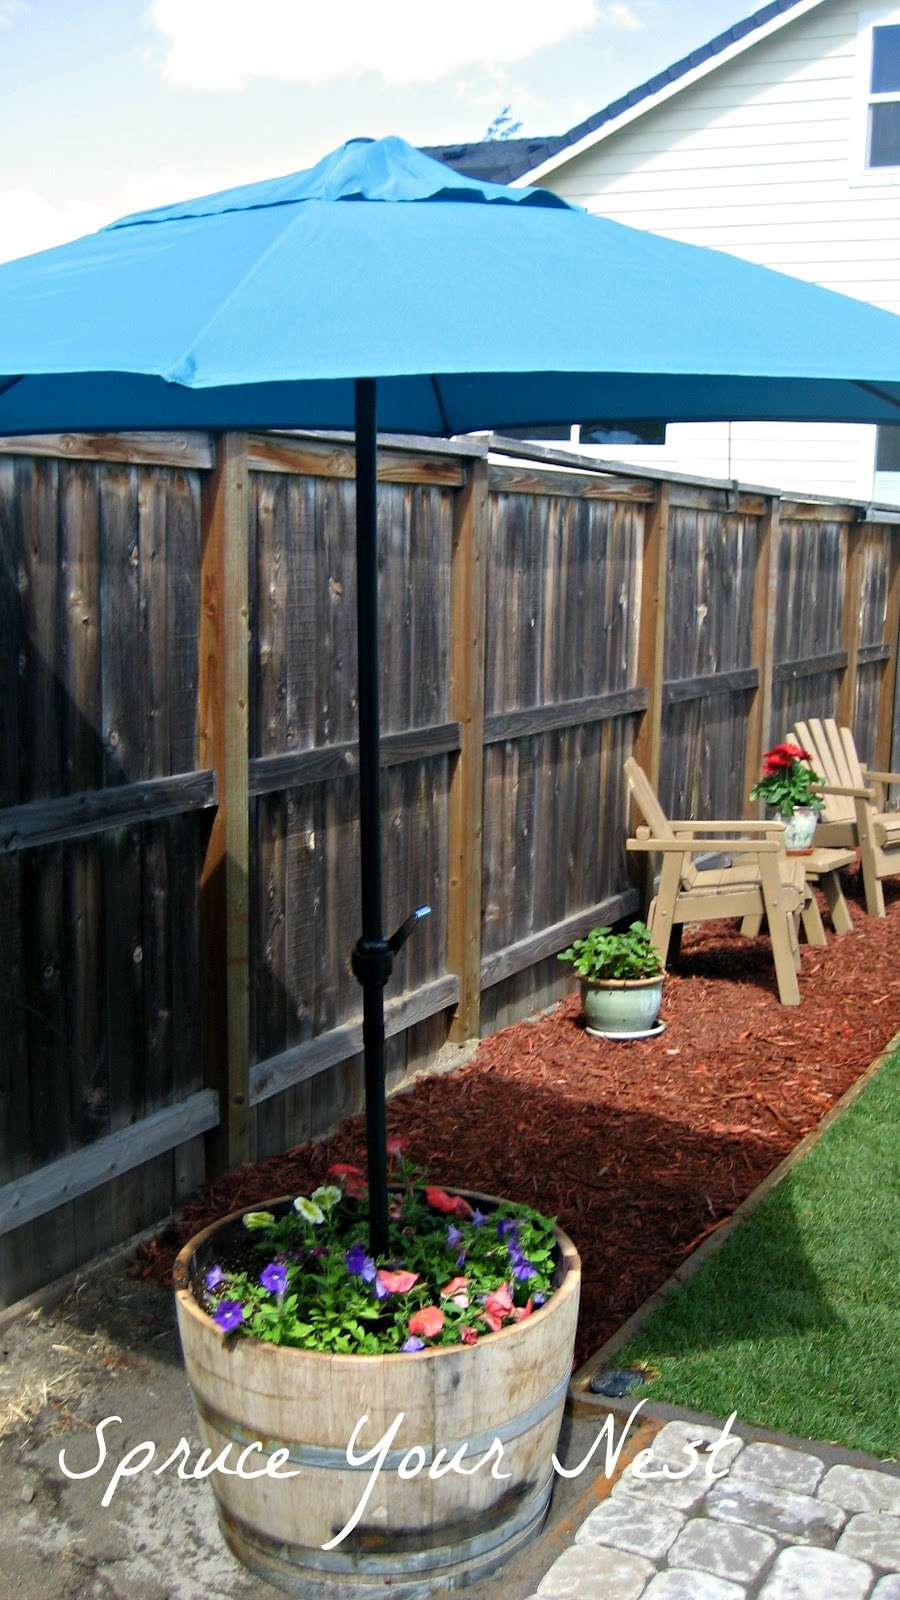 50 Best Backyard Landscaping Ideas and Designs in 2020 on Best Backyard Landscaping id=97841